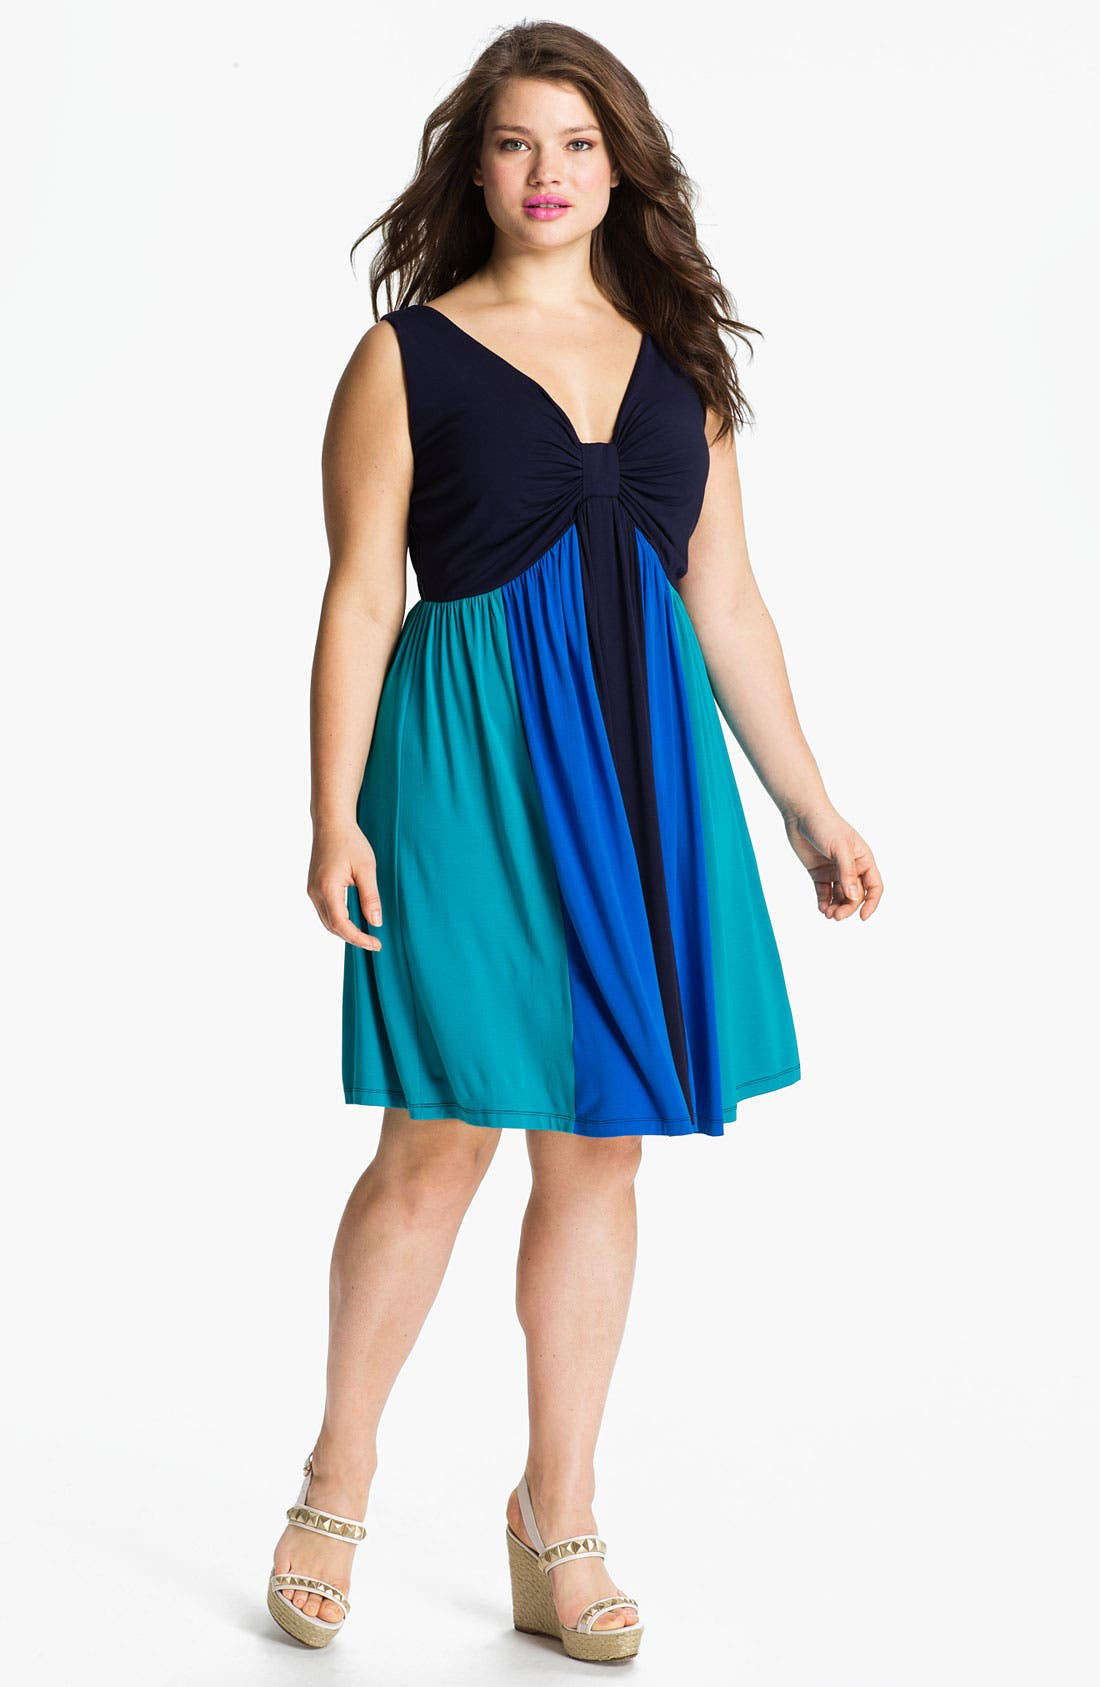 Alternate Image 1 Selected - Calvin Klein Multicolor Sleeveless Jersey Dress (Plus Size)